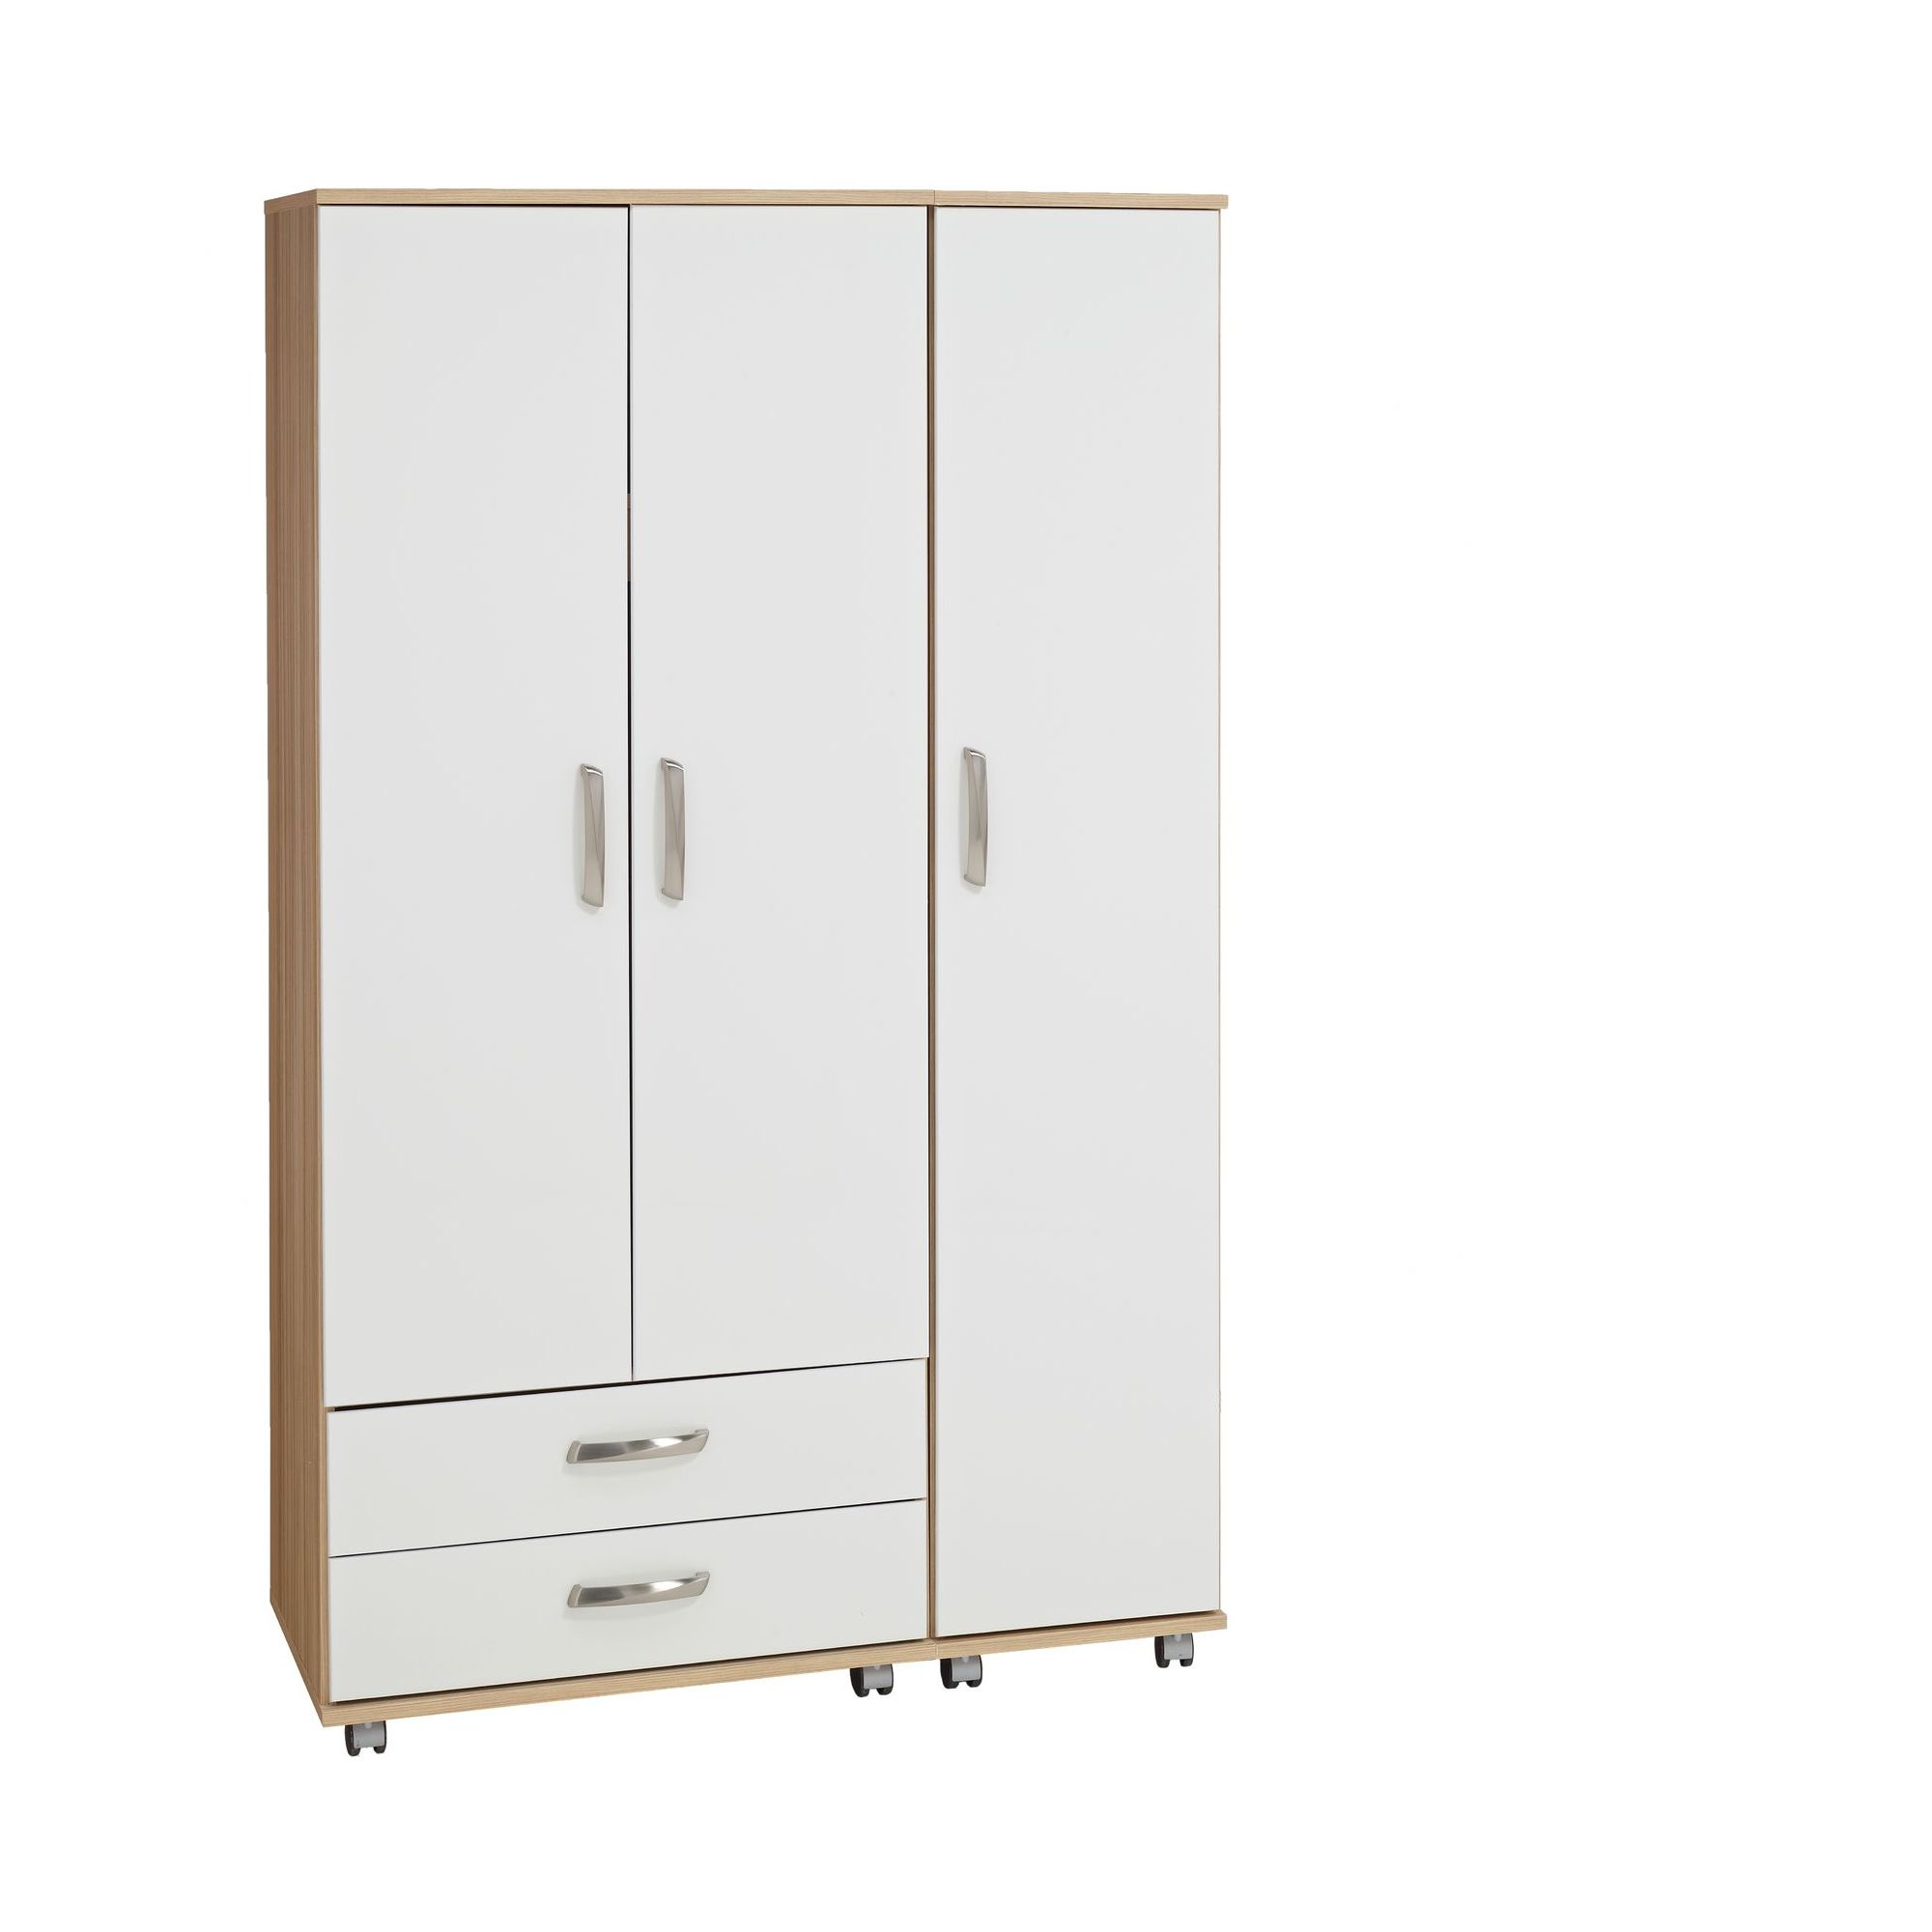 Ideal Furniture Regal 3 Door Wardrobe in white at Tesco Direct